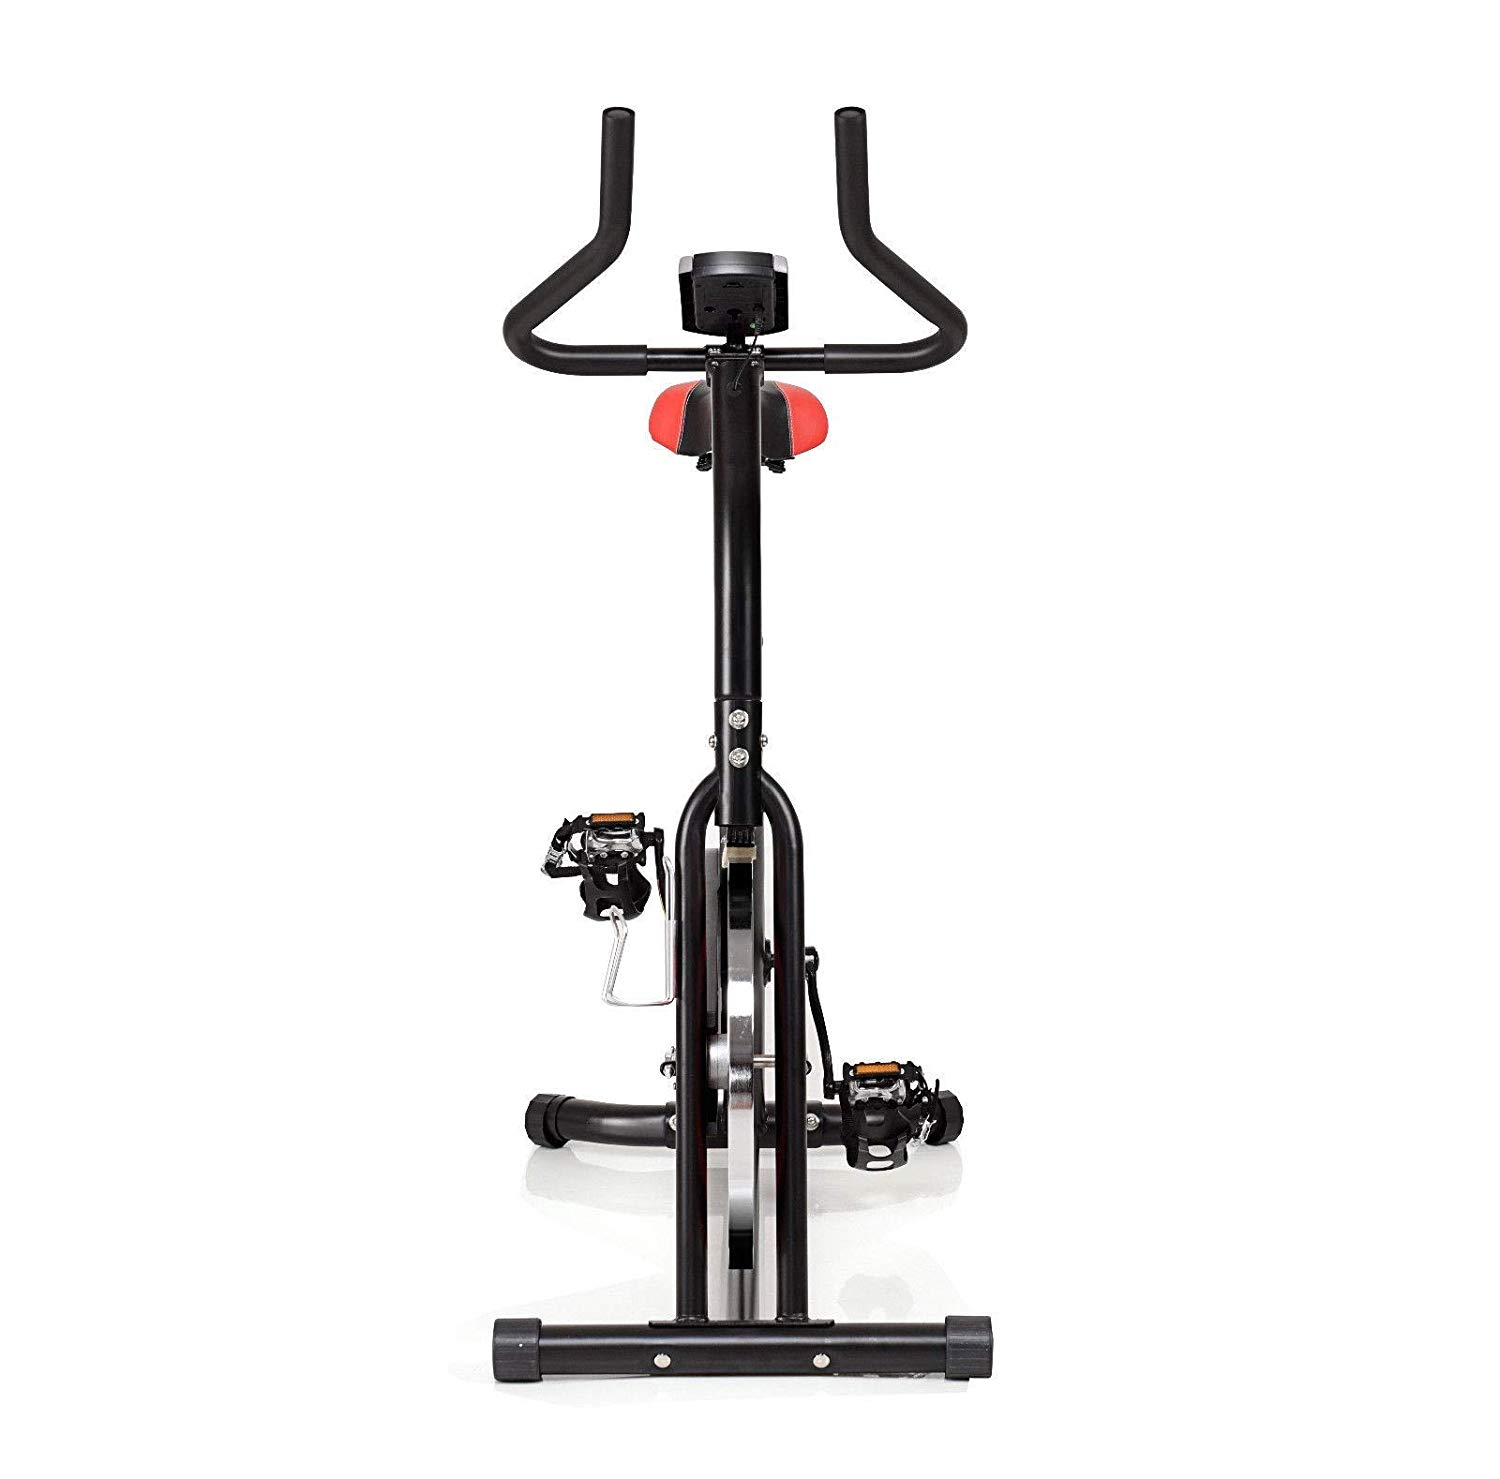 BeUniqueToday Indoor Cardio Fitness Stationary Exercise Bike, Fitness Stationary Exercise Bike with Heavy Duty Steel Frame and Crank, Adjustable Indoor Cardio Fitness Stationary Exercise Bike